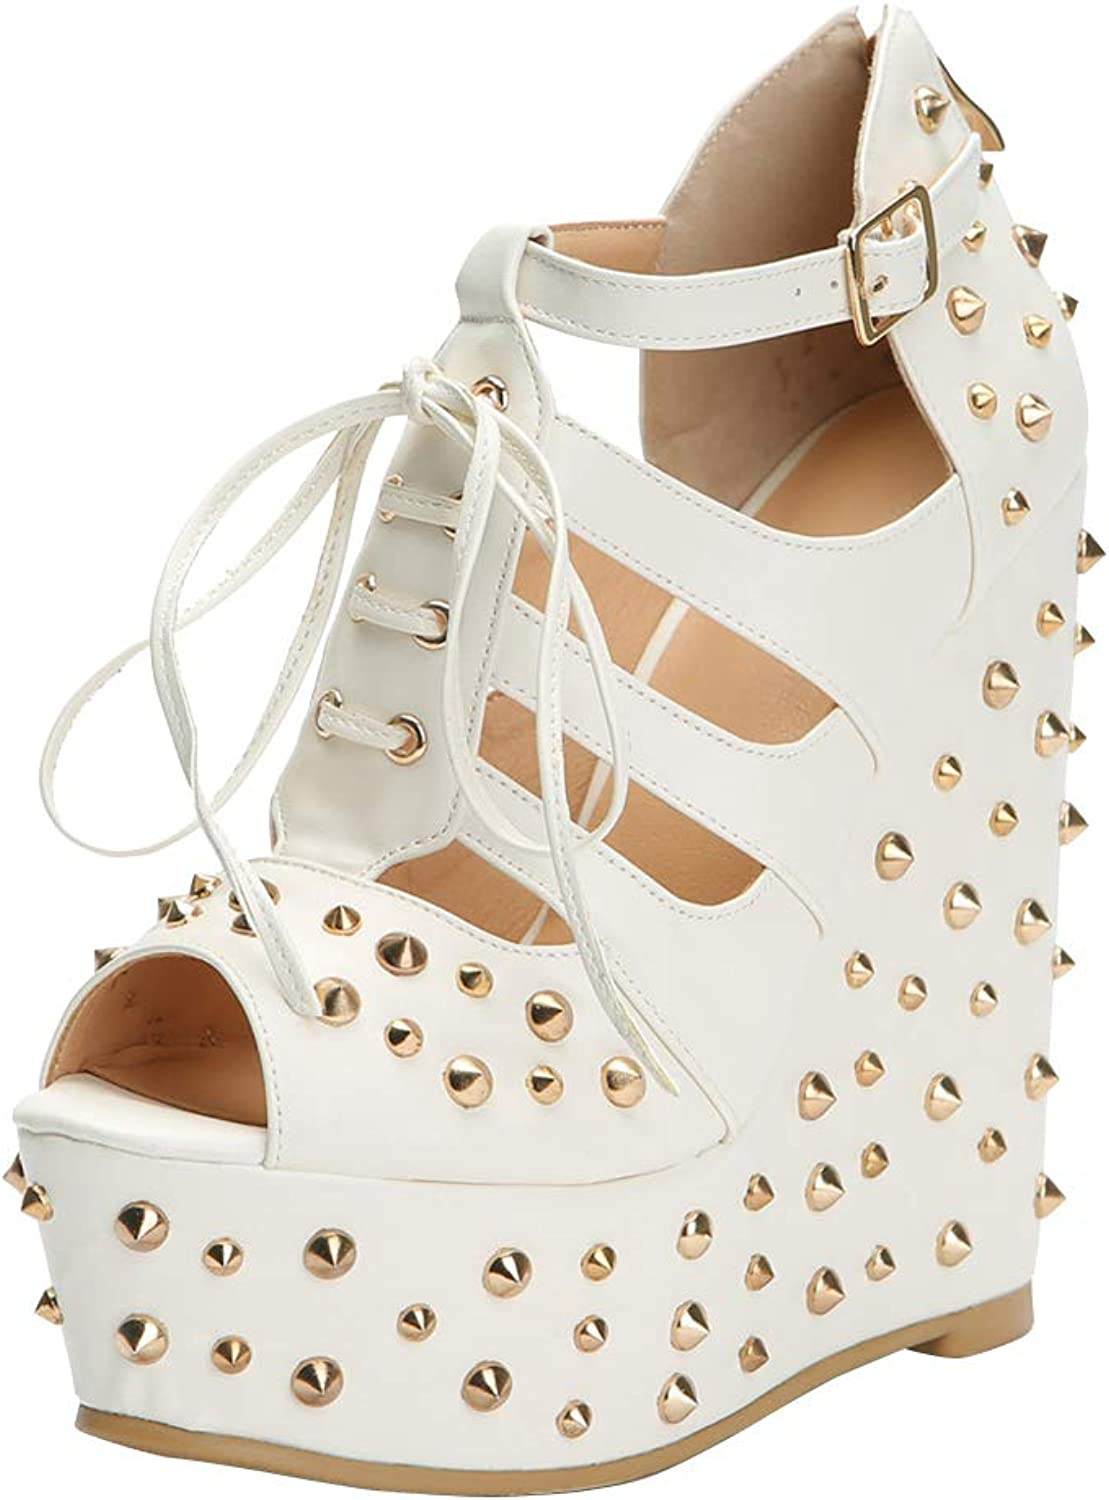 CASSOCK Women's Wadge Heel Sandals Rivets Spikes Lace-up Party Prom Summer Sexy Sandal shoes